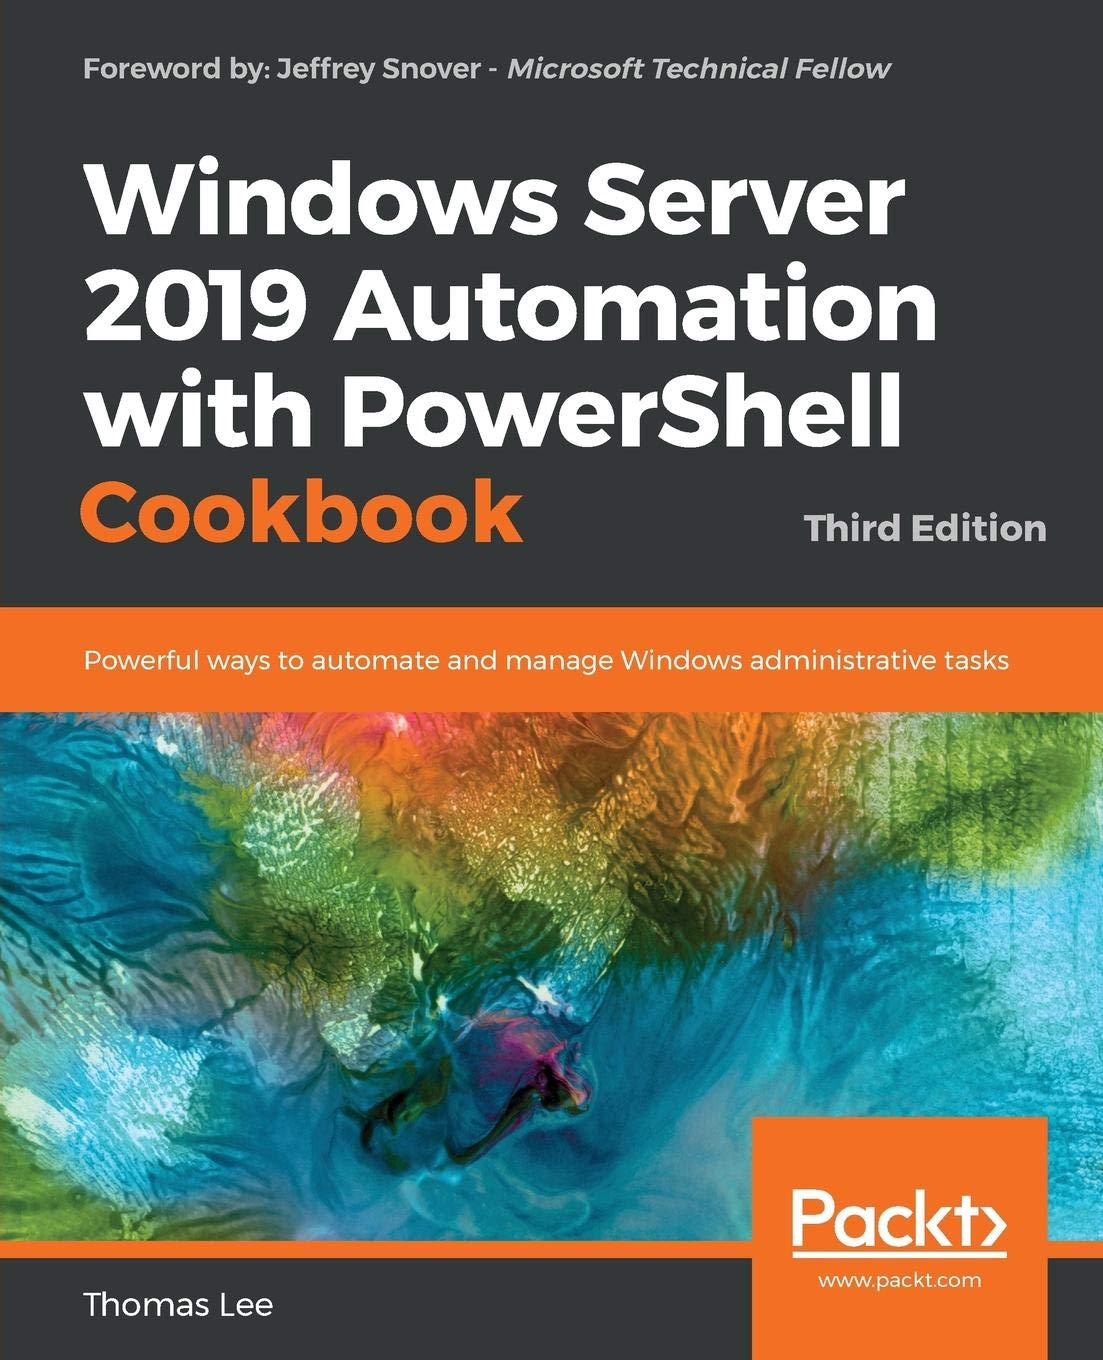 Windows Server 2019 Automation with PowerShell Cookbook: Powerful